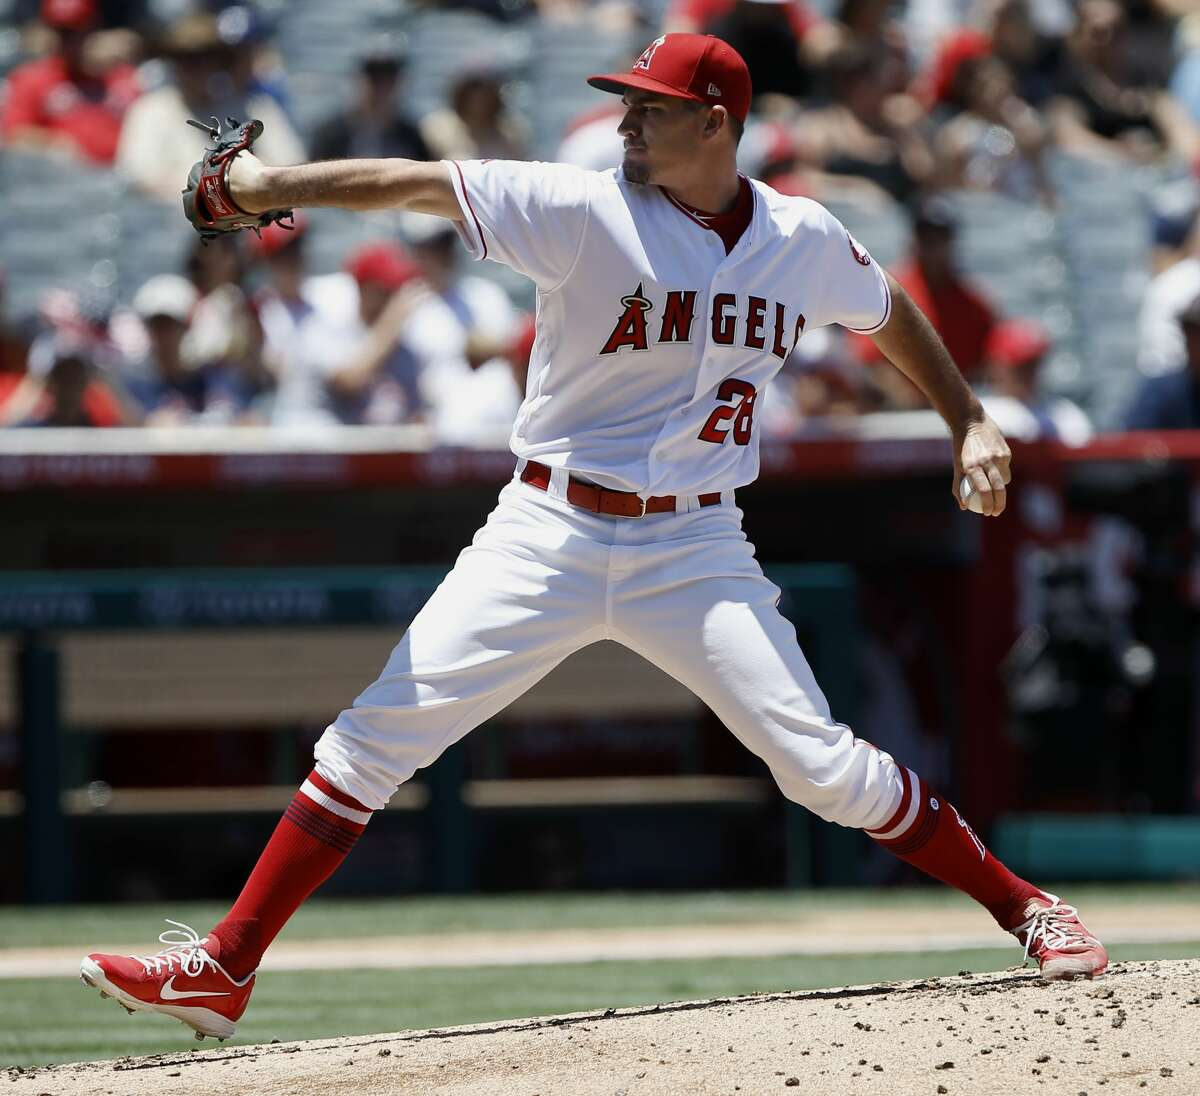 Los Angeles Angels starting pitcher Andrew Heaney delivers to a Houston Astros batter during the second inning of a baseball game in Anaheim, Calif., Sunday, July 22, 2018. (AP Photo/Alex Gallardo)